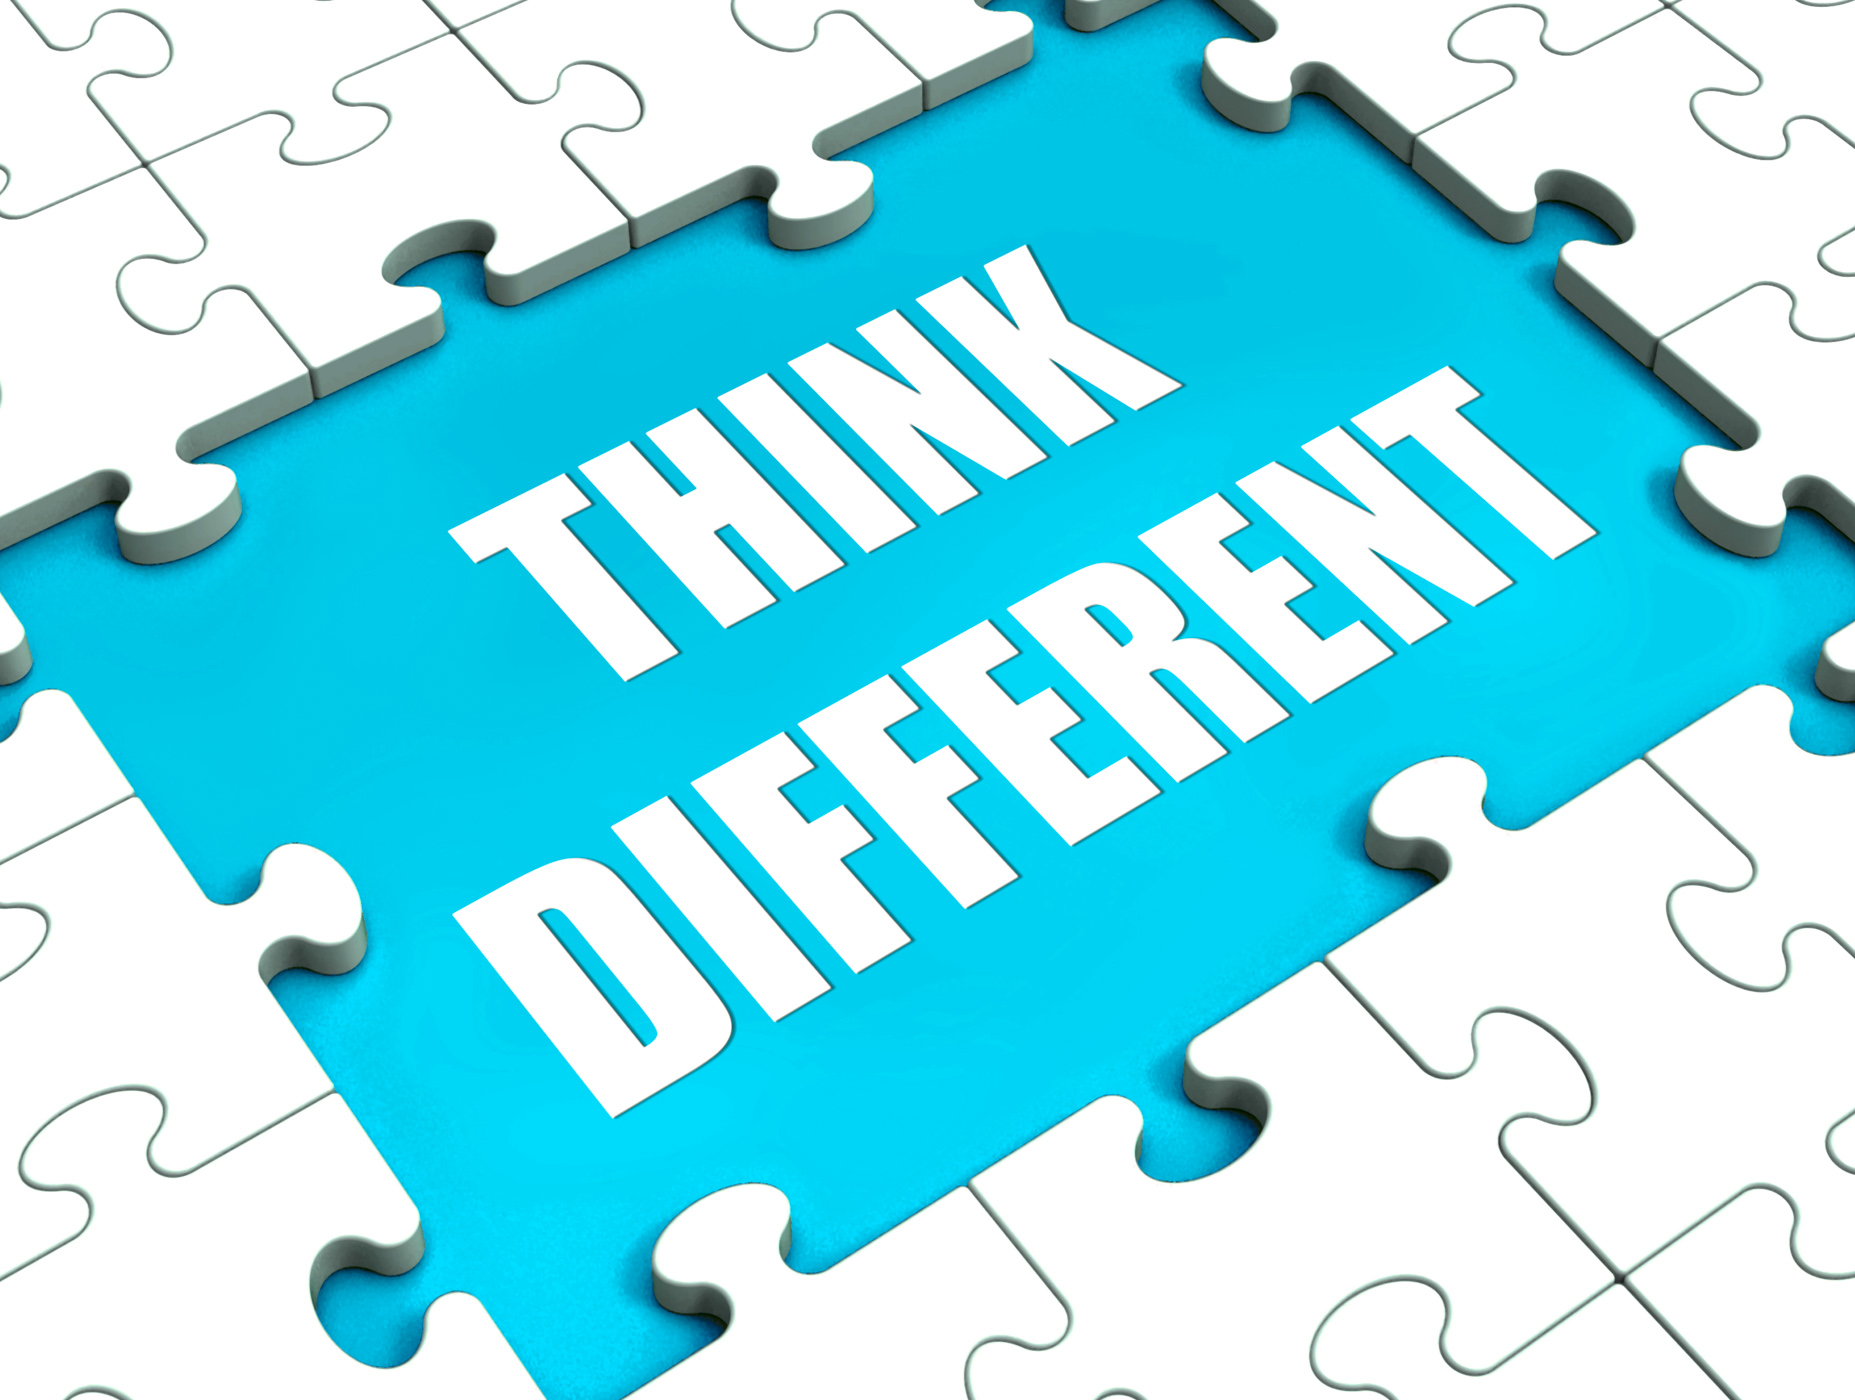 Think different puzzle shows thinking outside the box photo